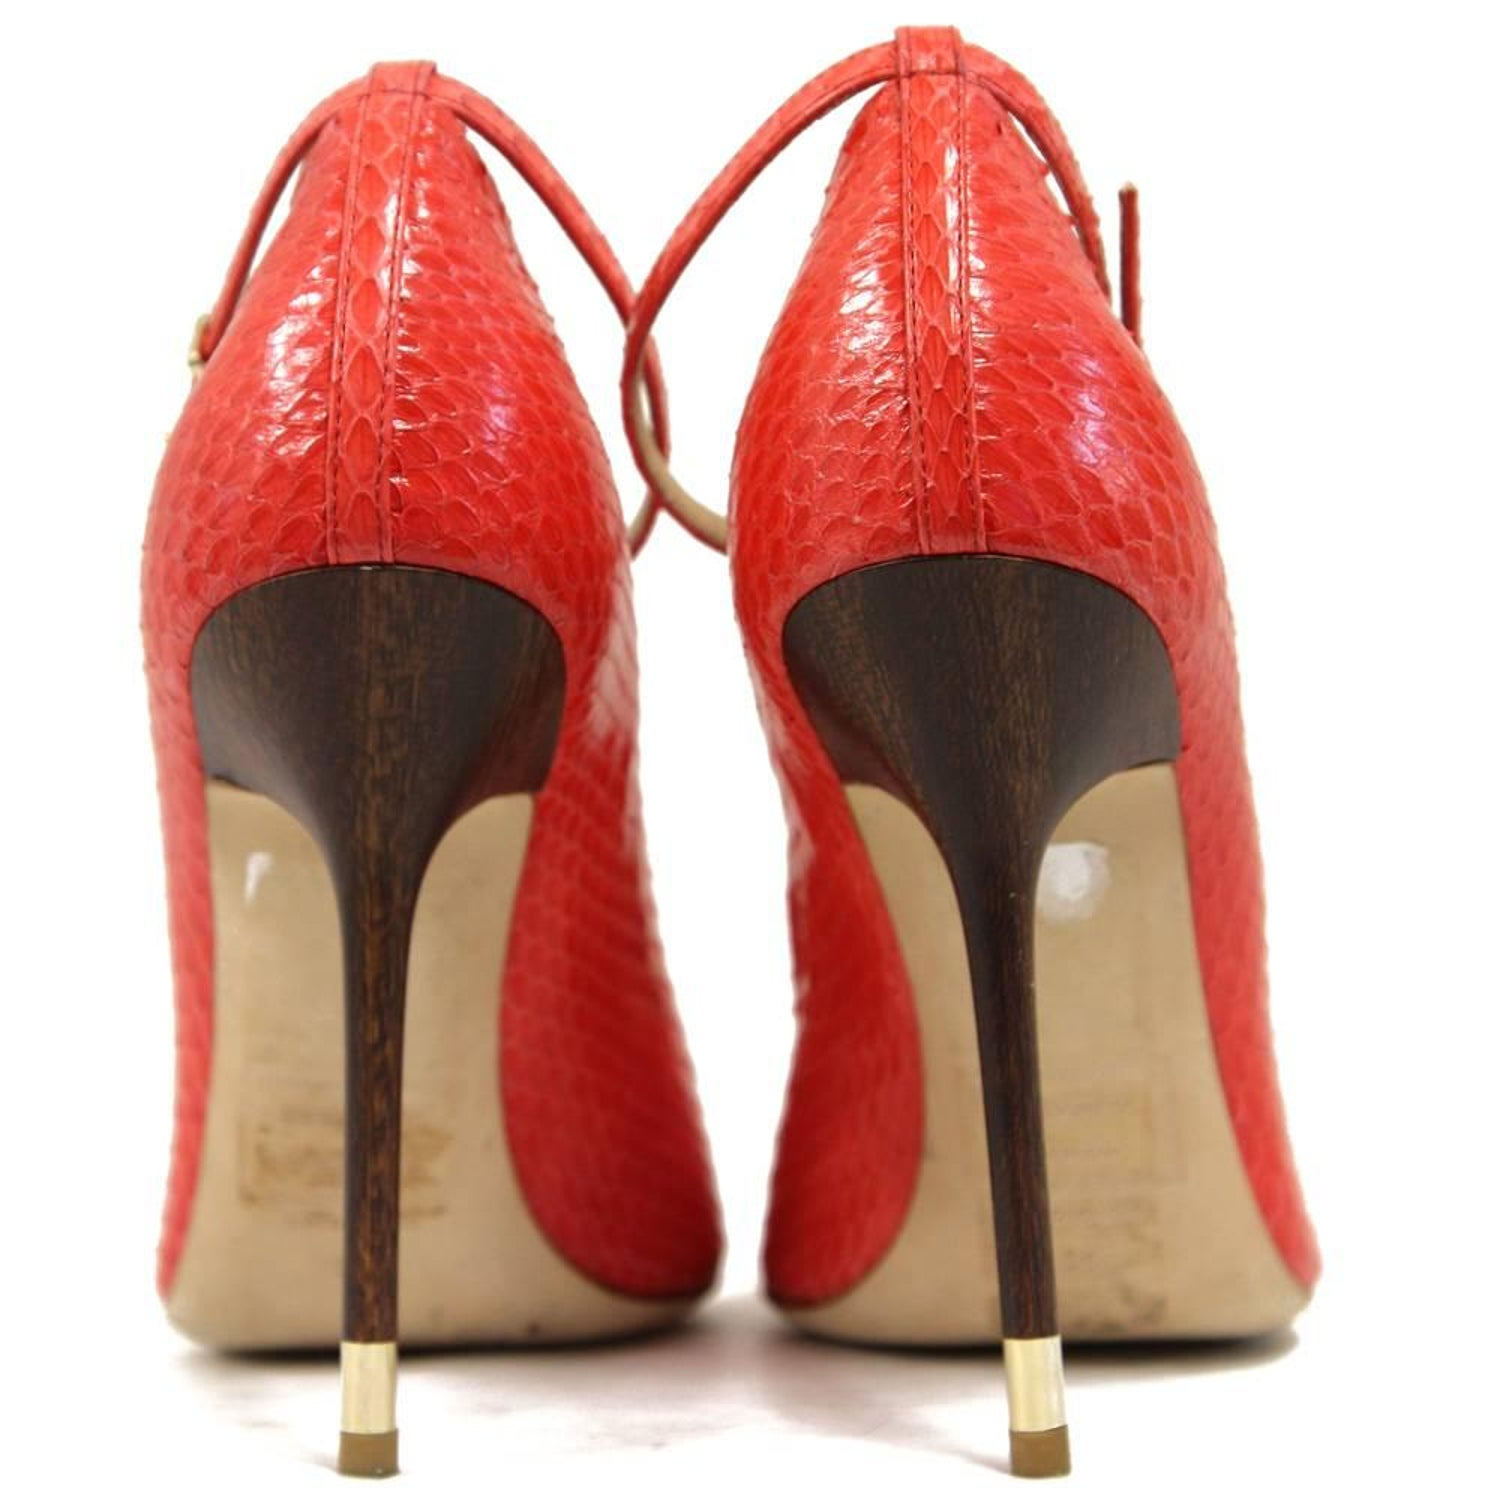 511c5e768f Dsquared2 Red Python Skin Pumps, 2000s at 1stdibs